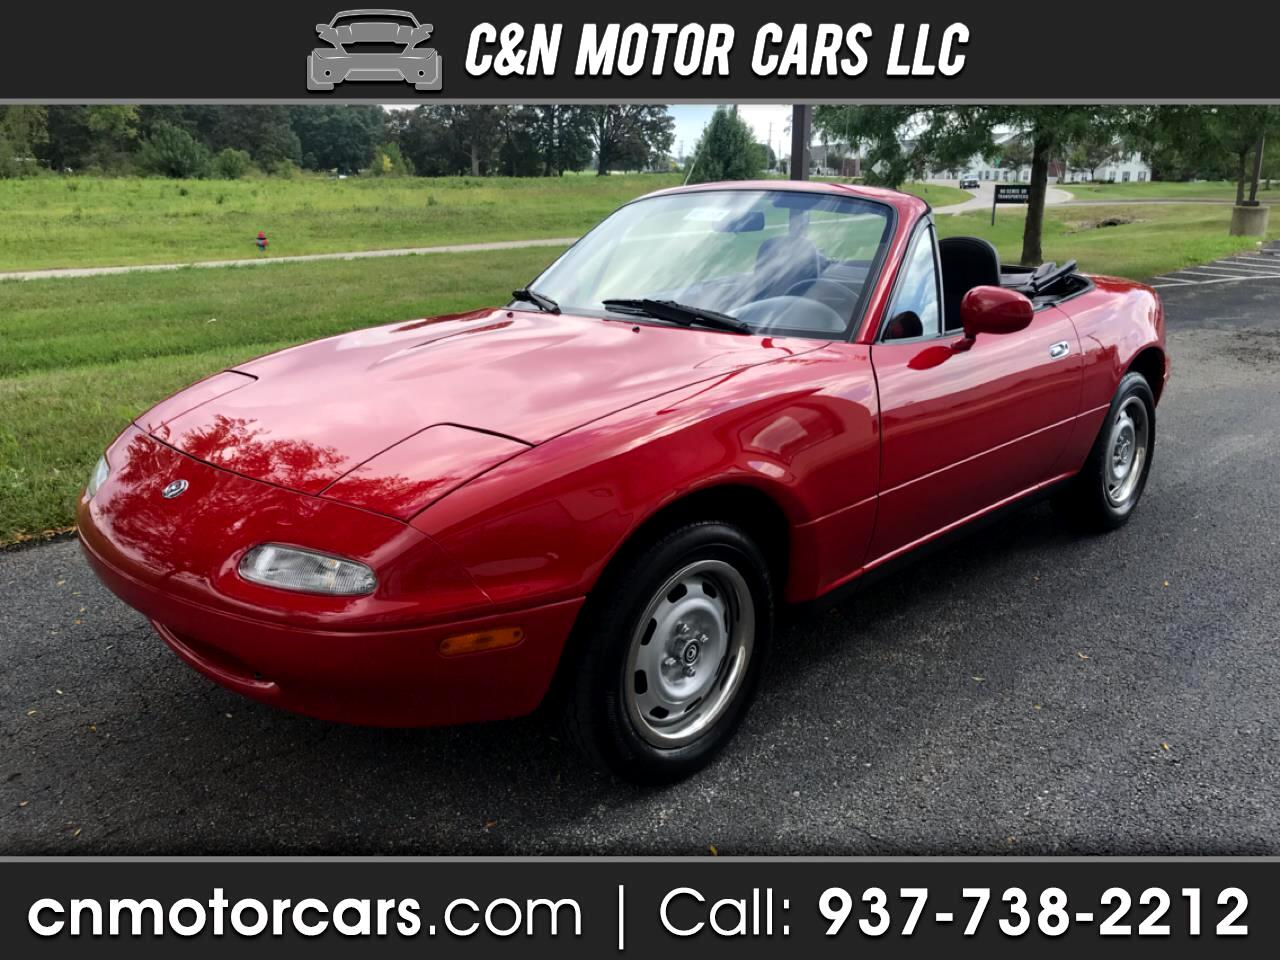 1995 Mazda MX5 Miata 2dr Convertible Base Manual